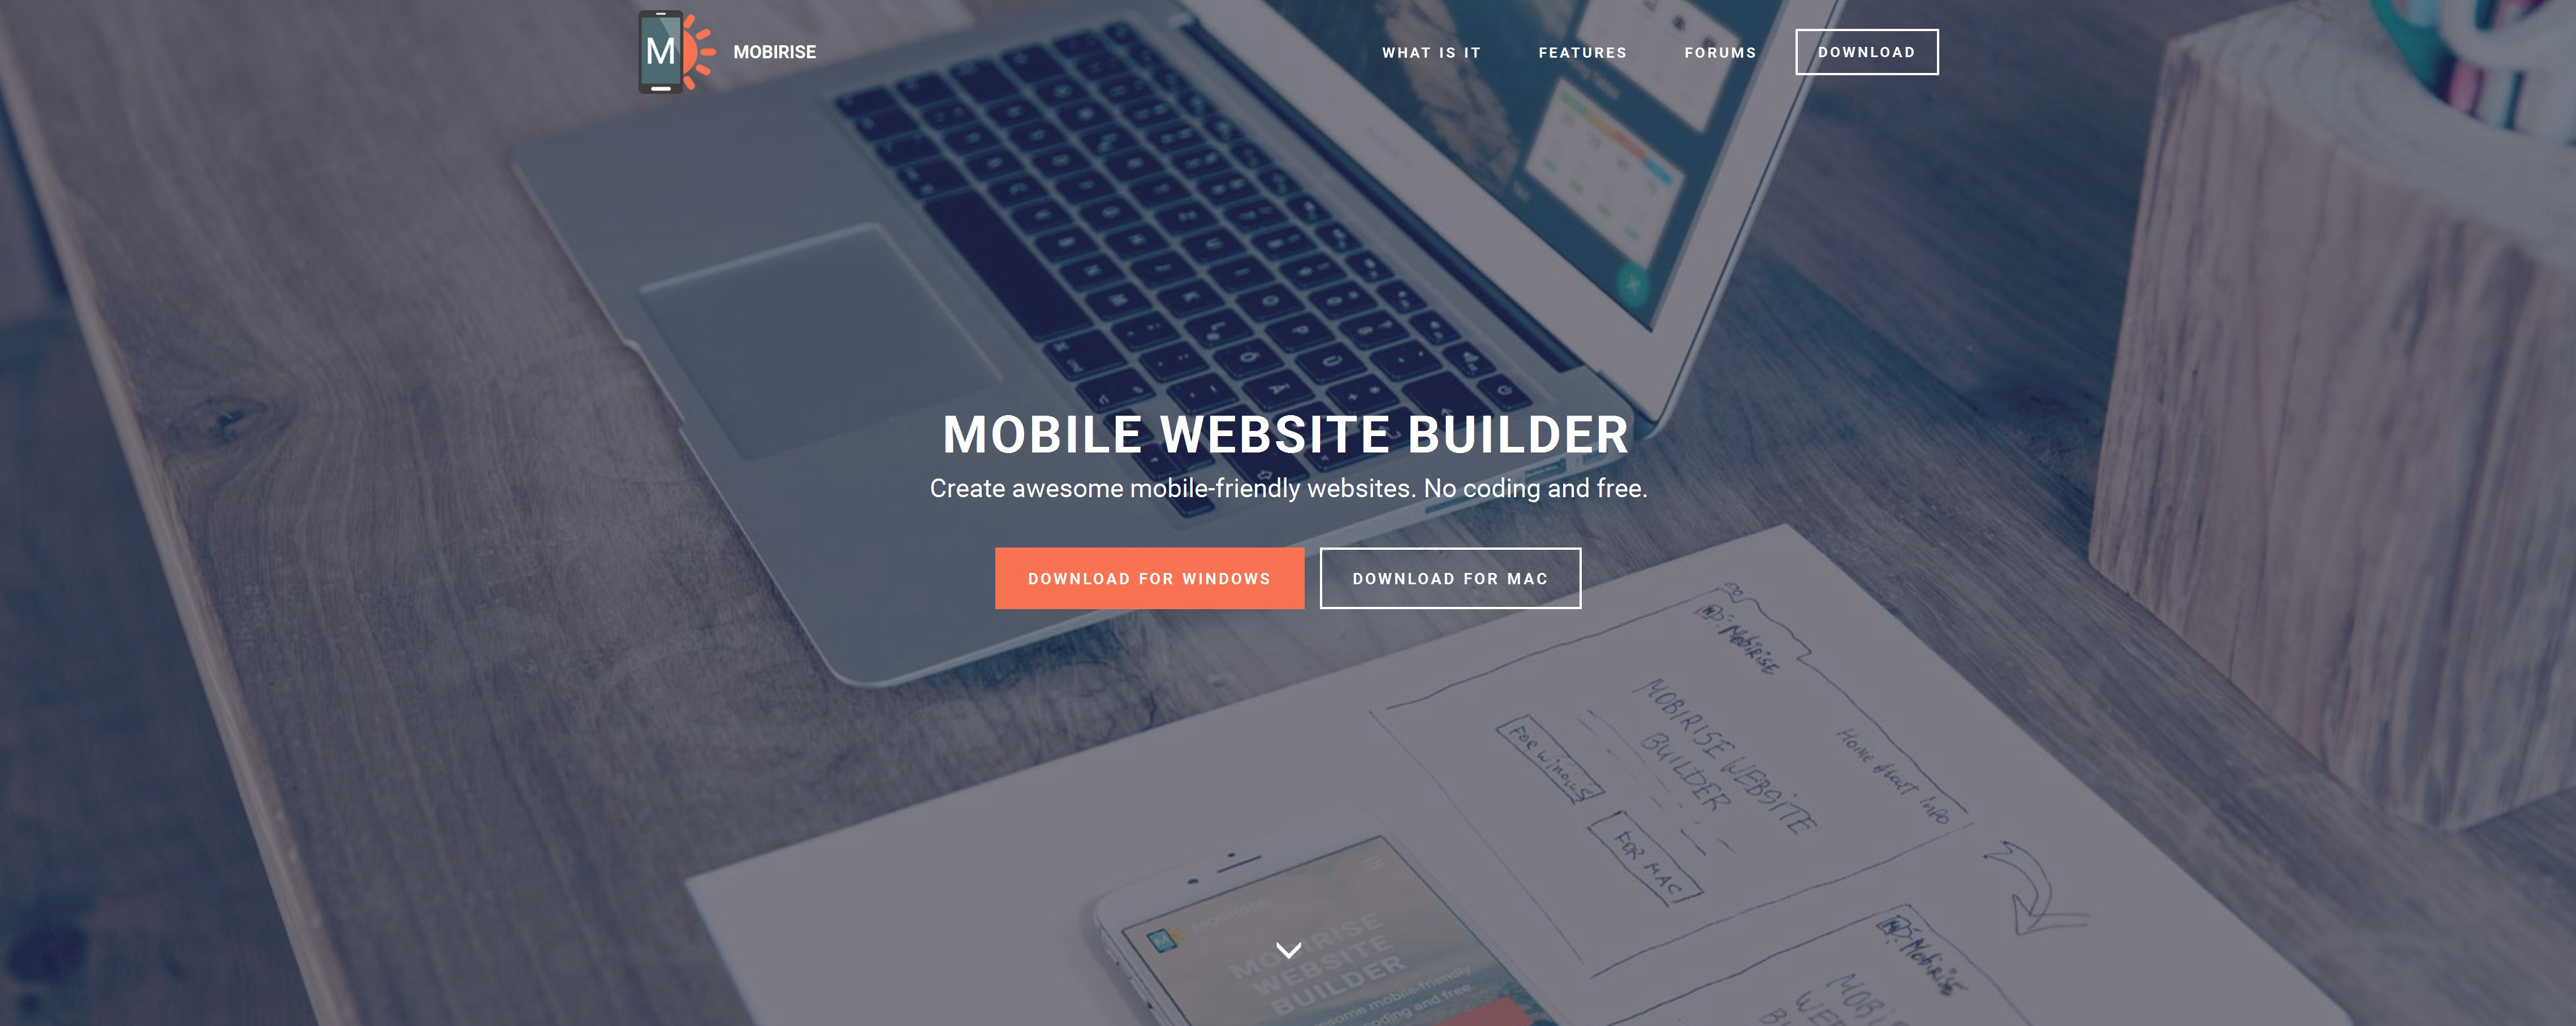 Bootstrap Mobile Website Builder Software